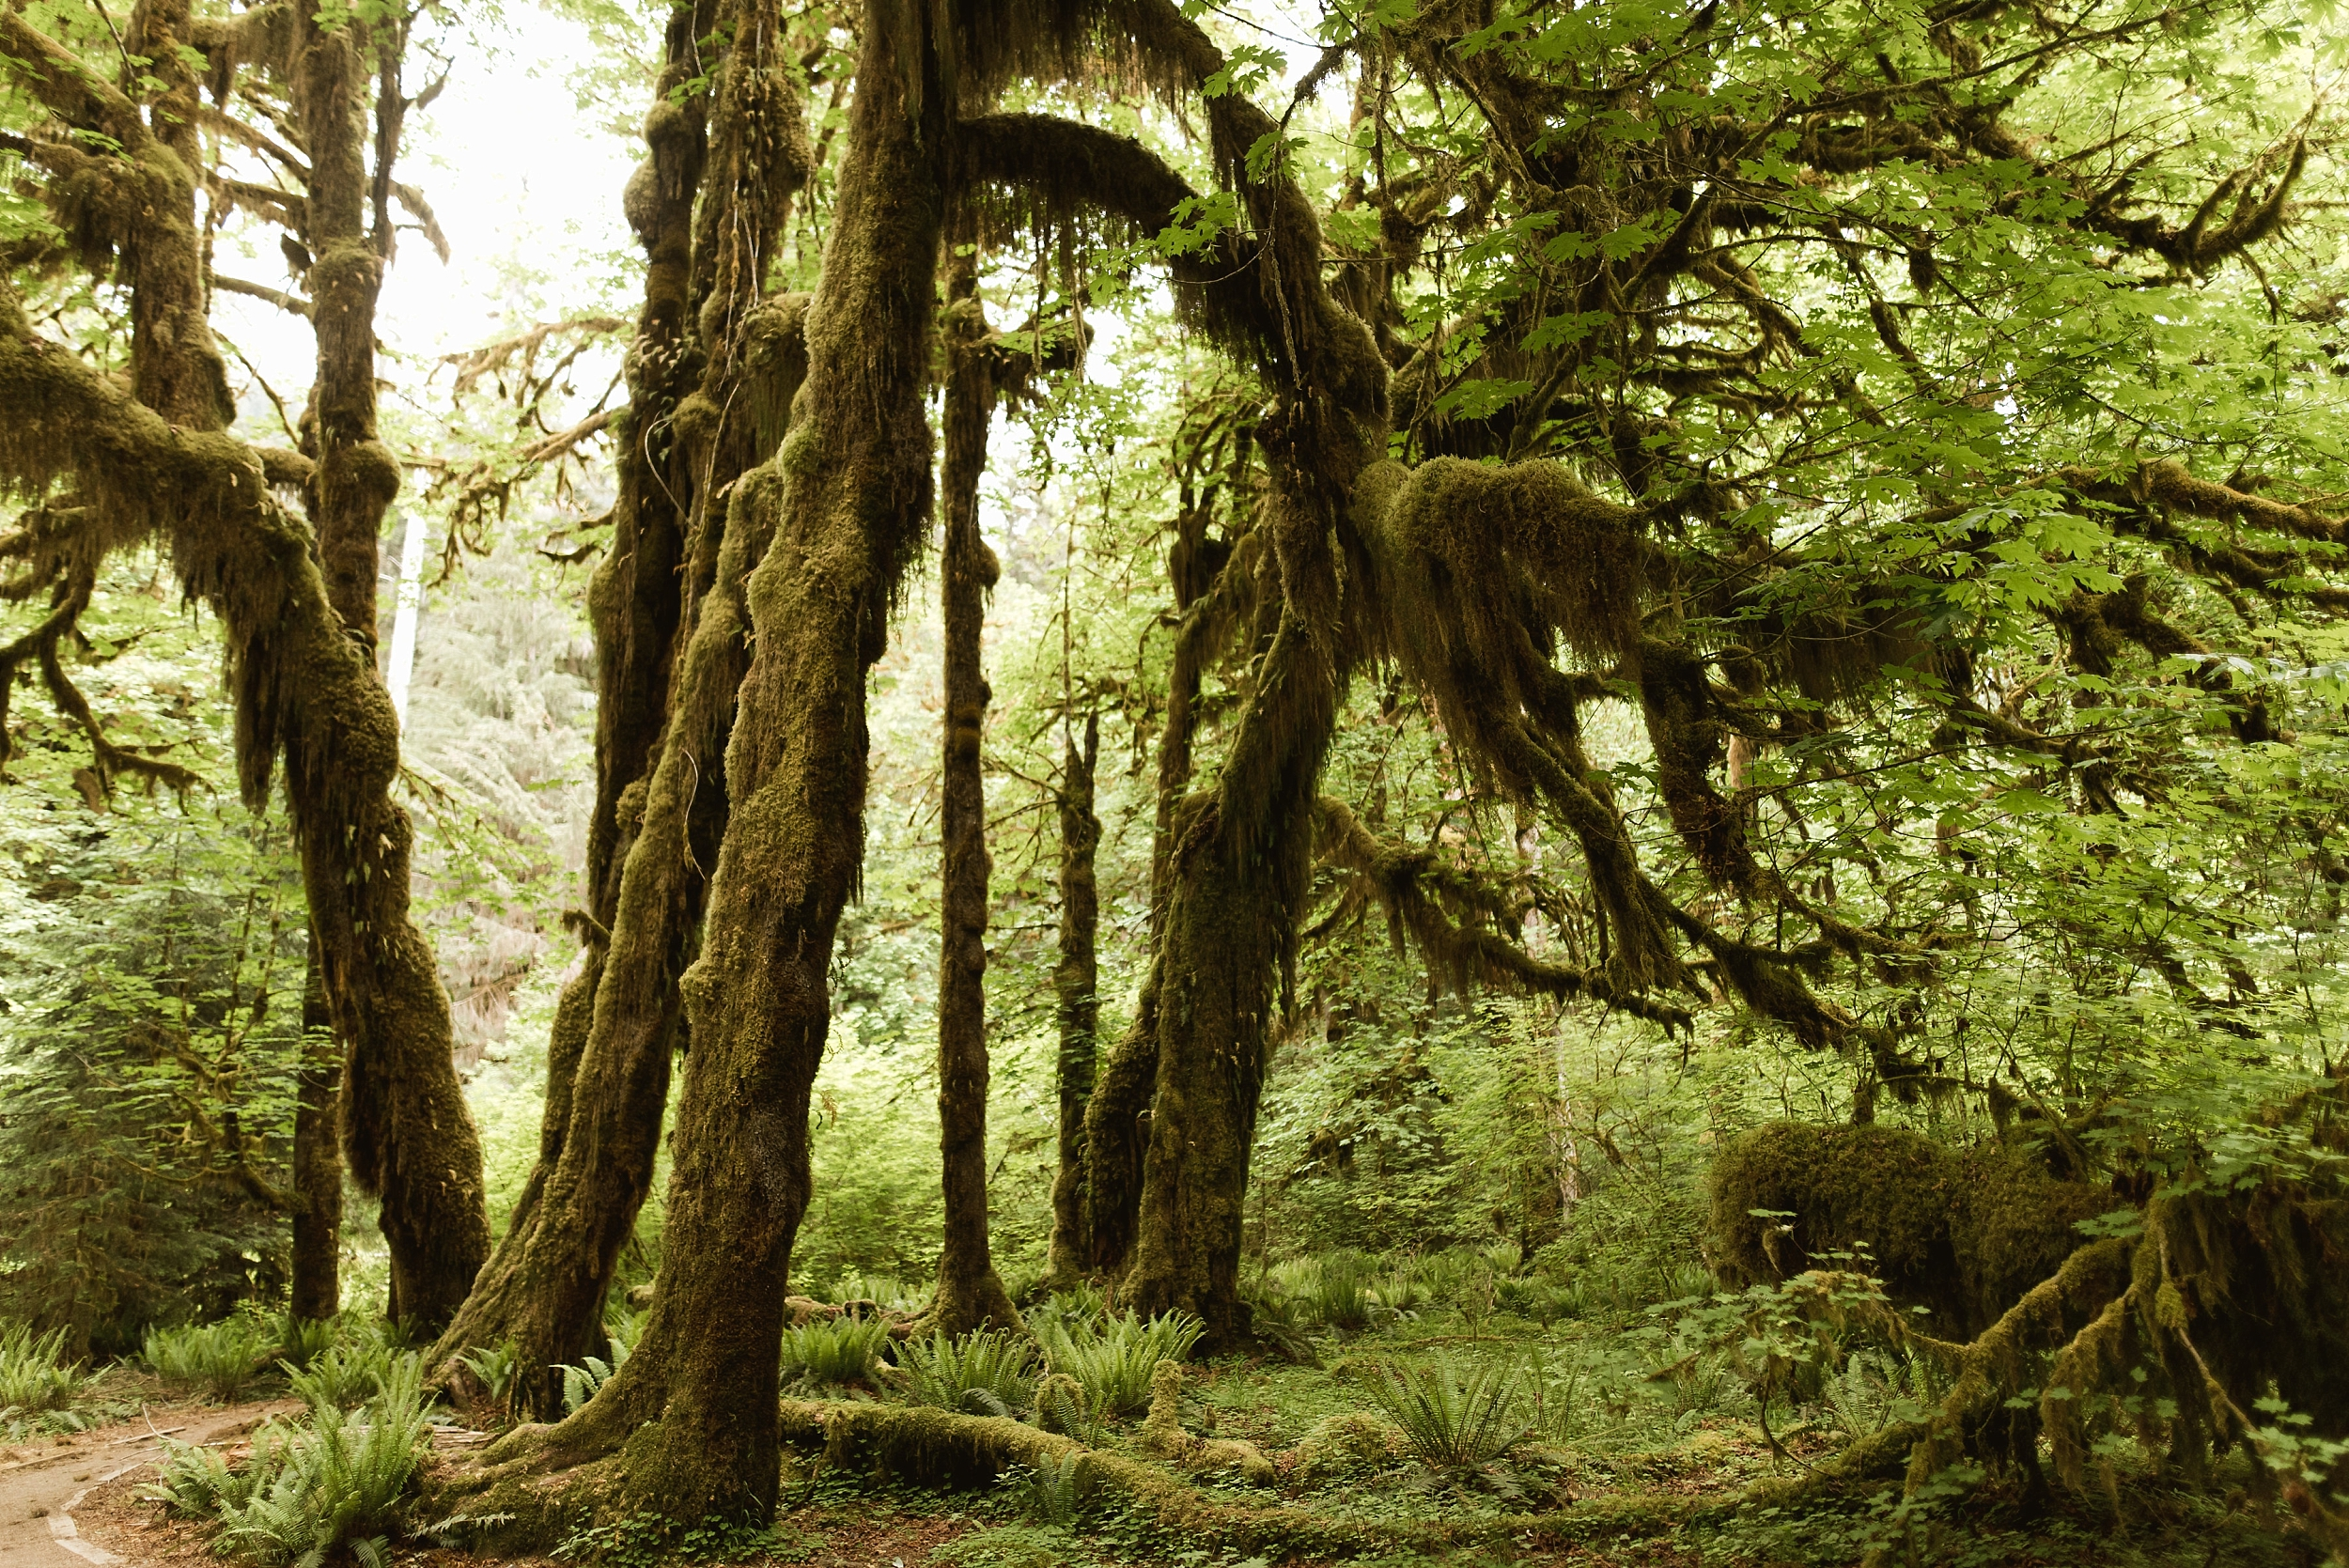 Oregon is home to miles upon miles of lush, amazing rain forests. In this picture captured by Adventure Instead, an elopement photographer, giant trees grow in a moss-covered, old-growth forest.